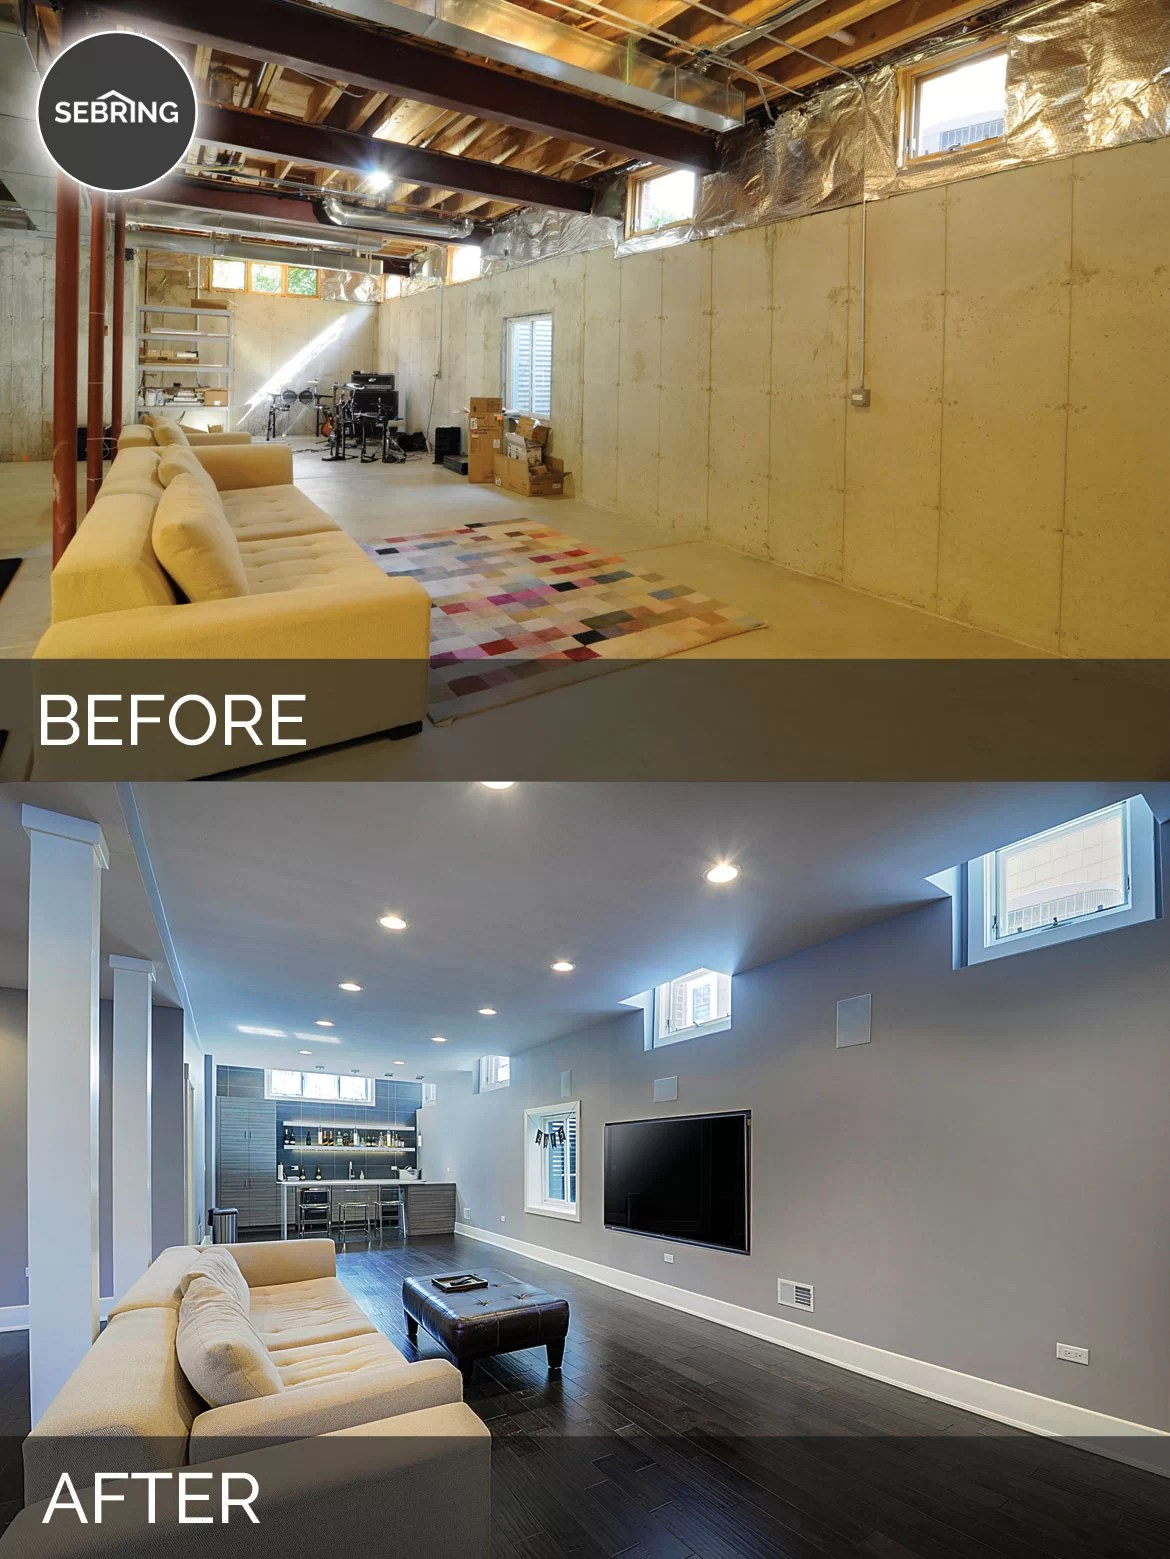 Sidd  Nishas Basement Before  After Pictures  Home Remodeling Contractors  Sebring Design Build